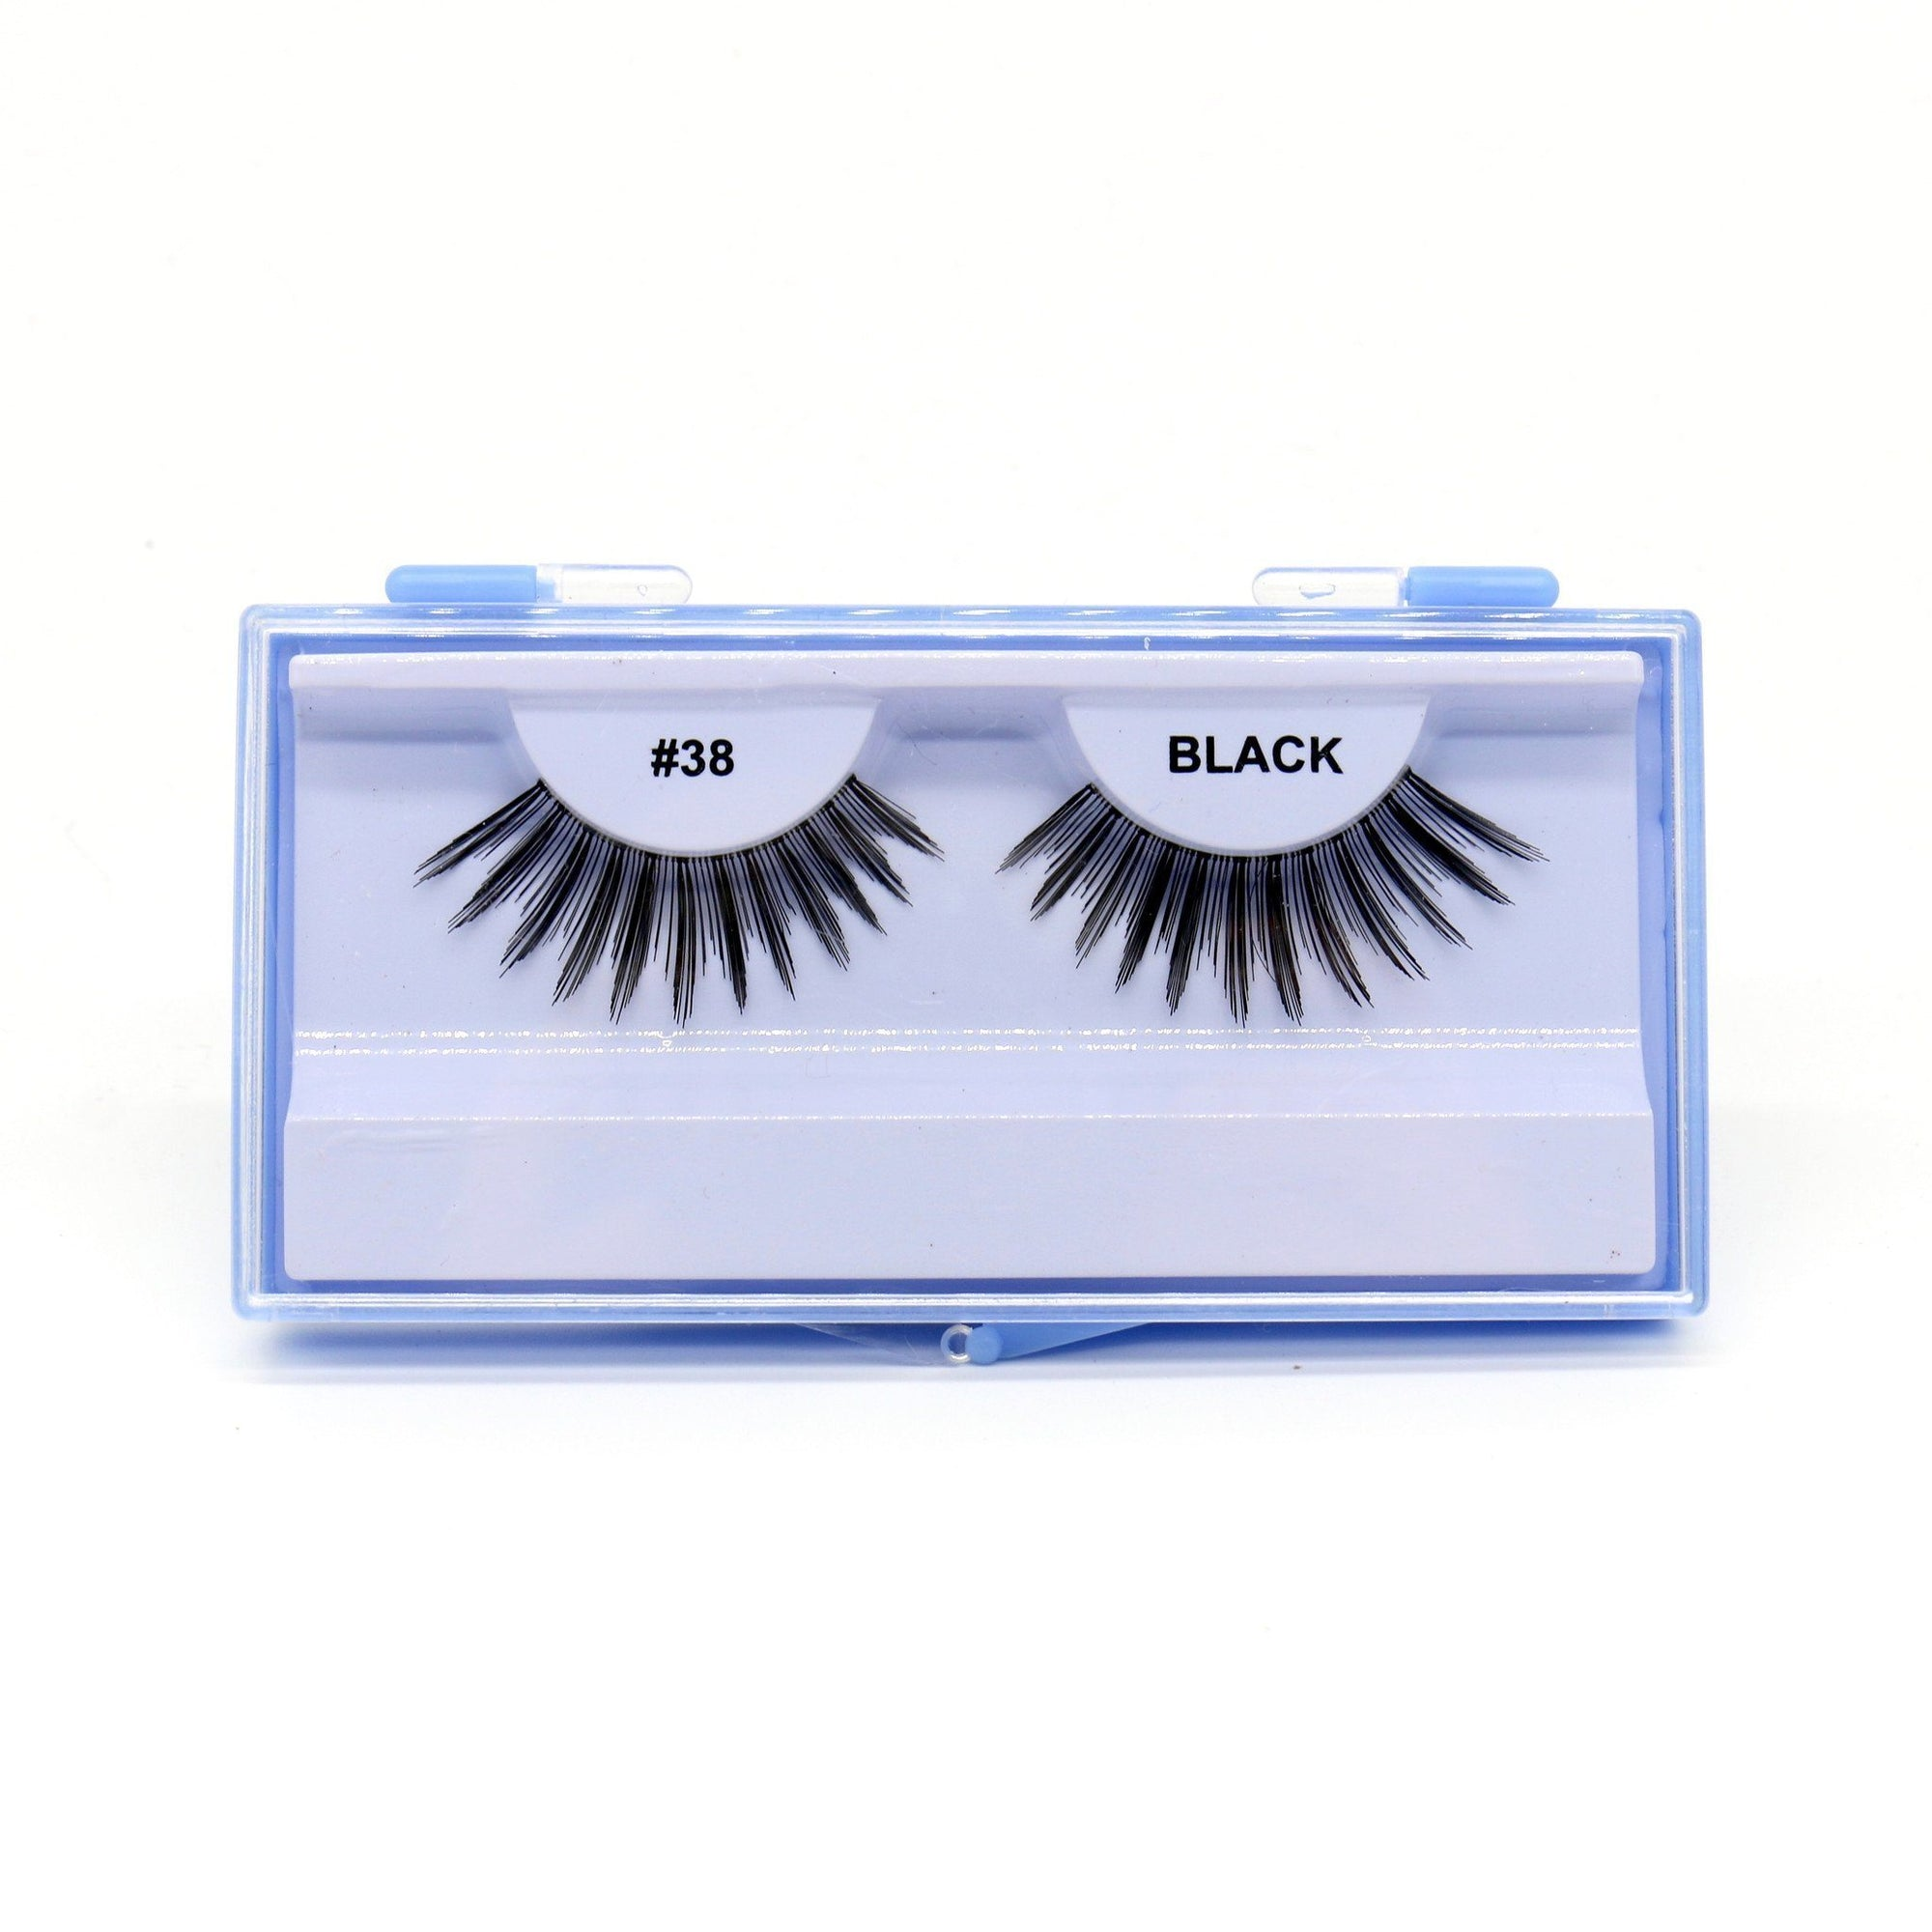 Blue Case Eyelash, #38 (6PC)